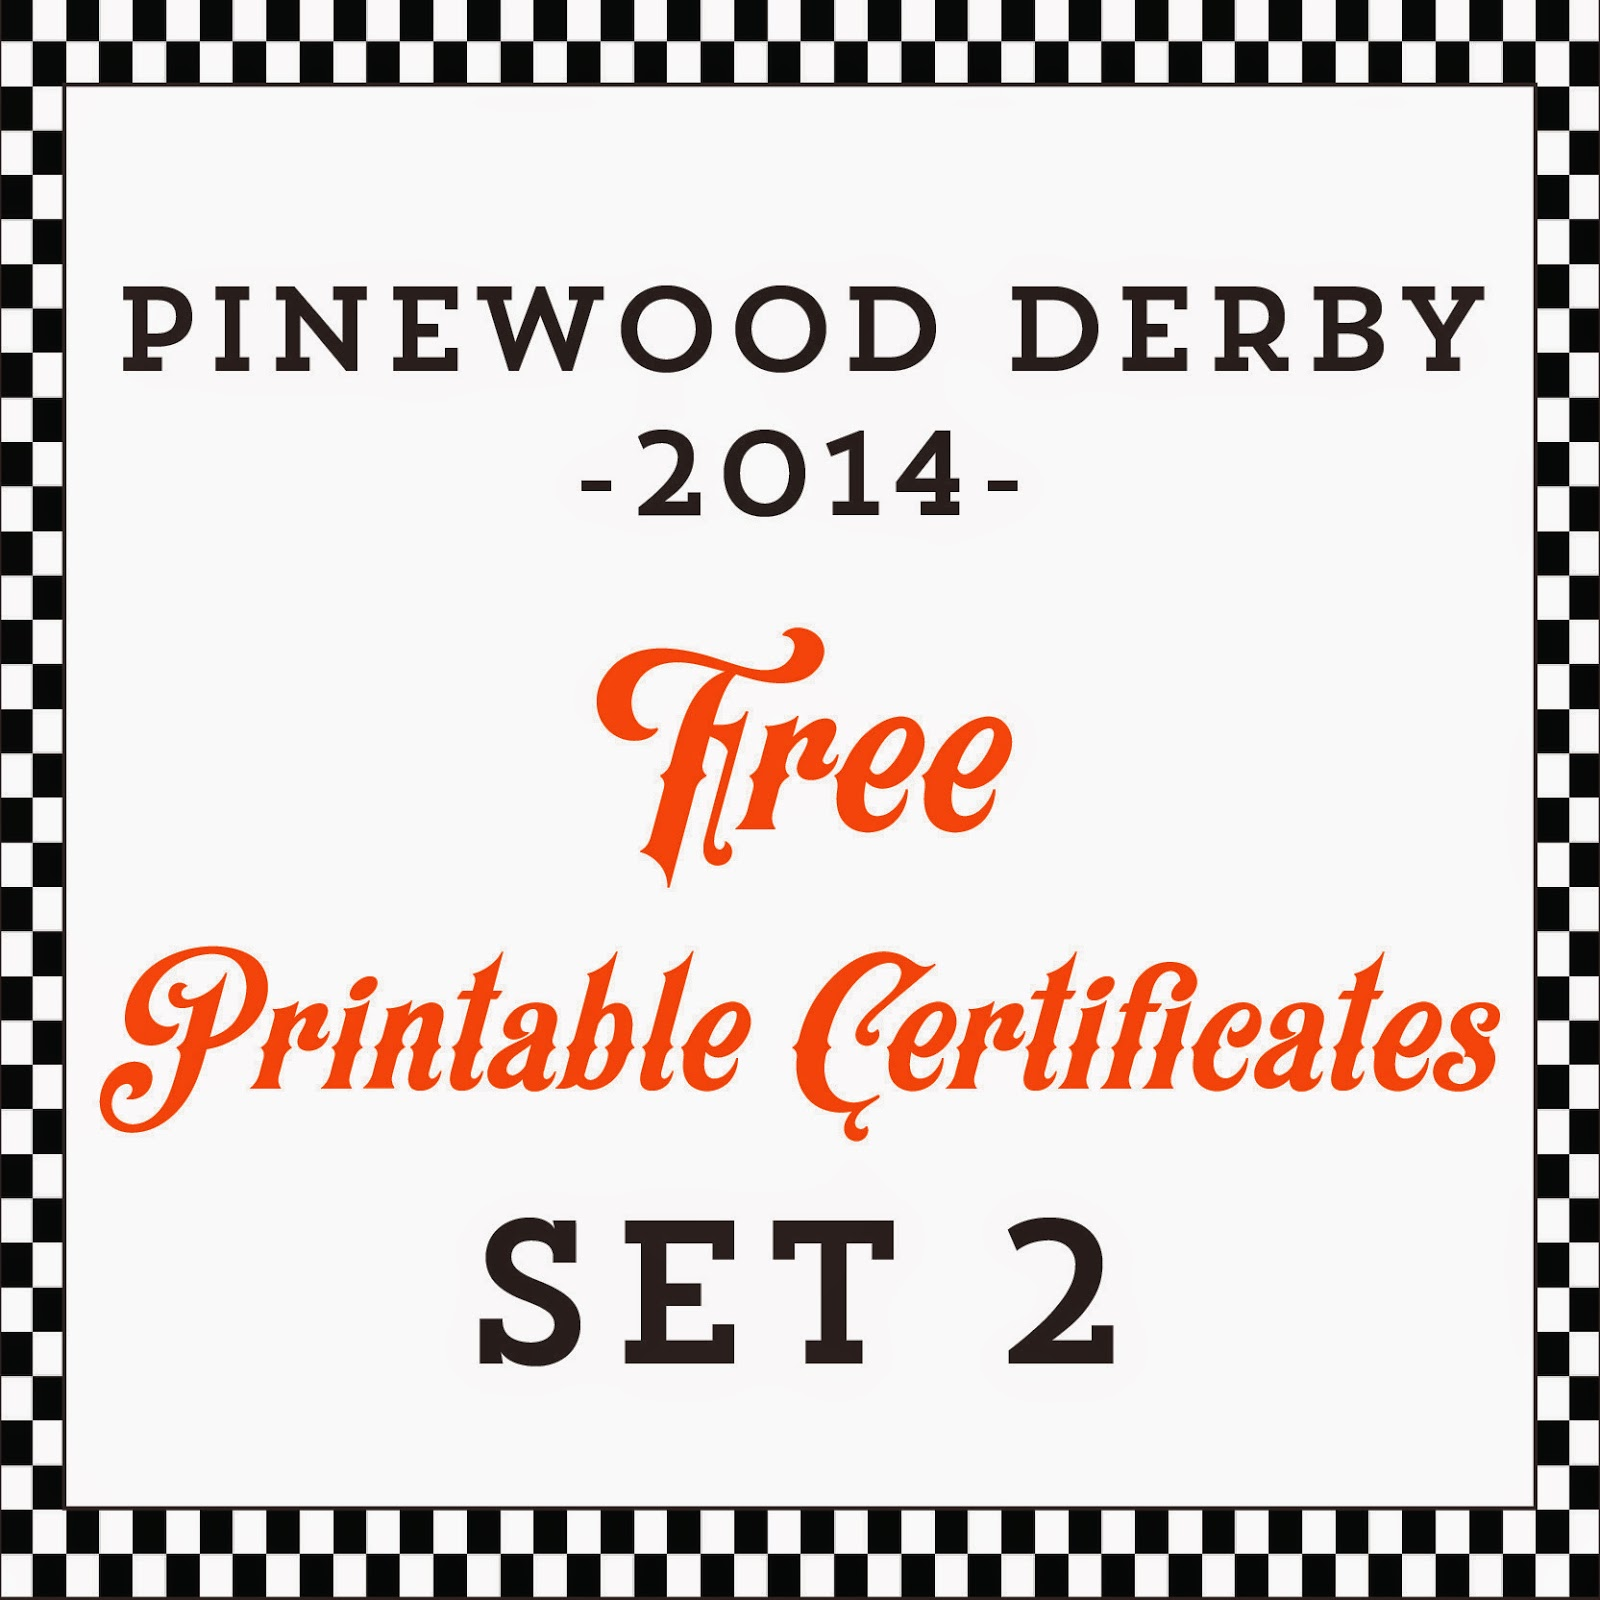 Hot Commodity Home Decor: Free Printable Pinewood Derby Awards